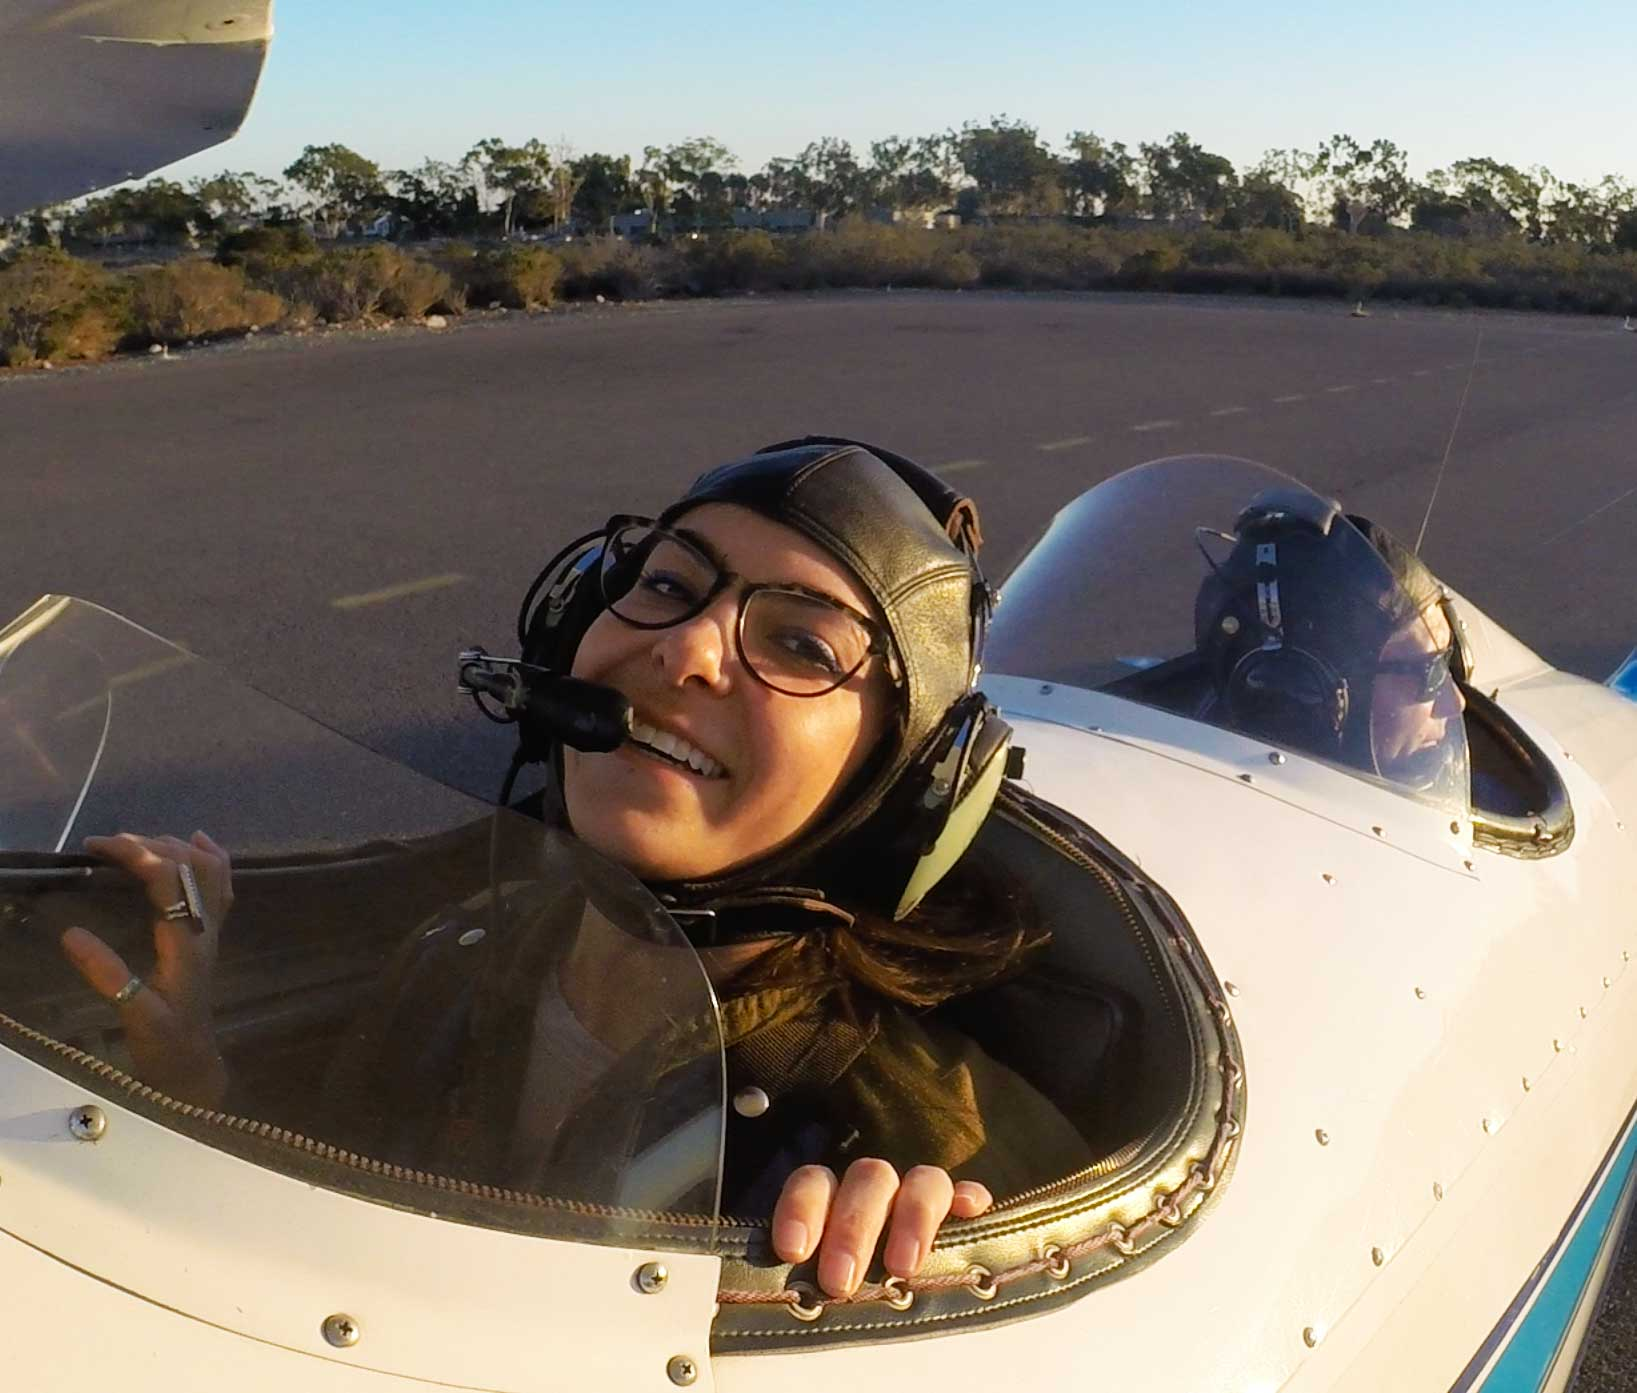 """We are awaiting our turn to Takeoff and coordinating with Tower Control. """"Hang in there Aubry!"""""""